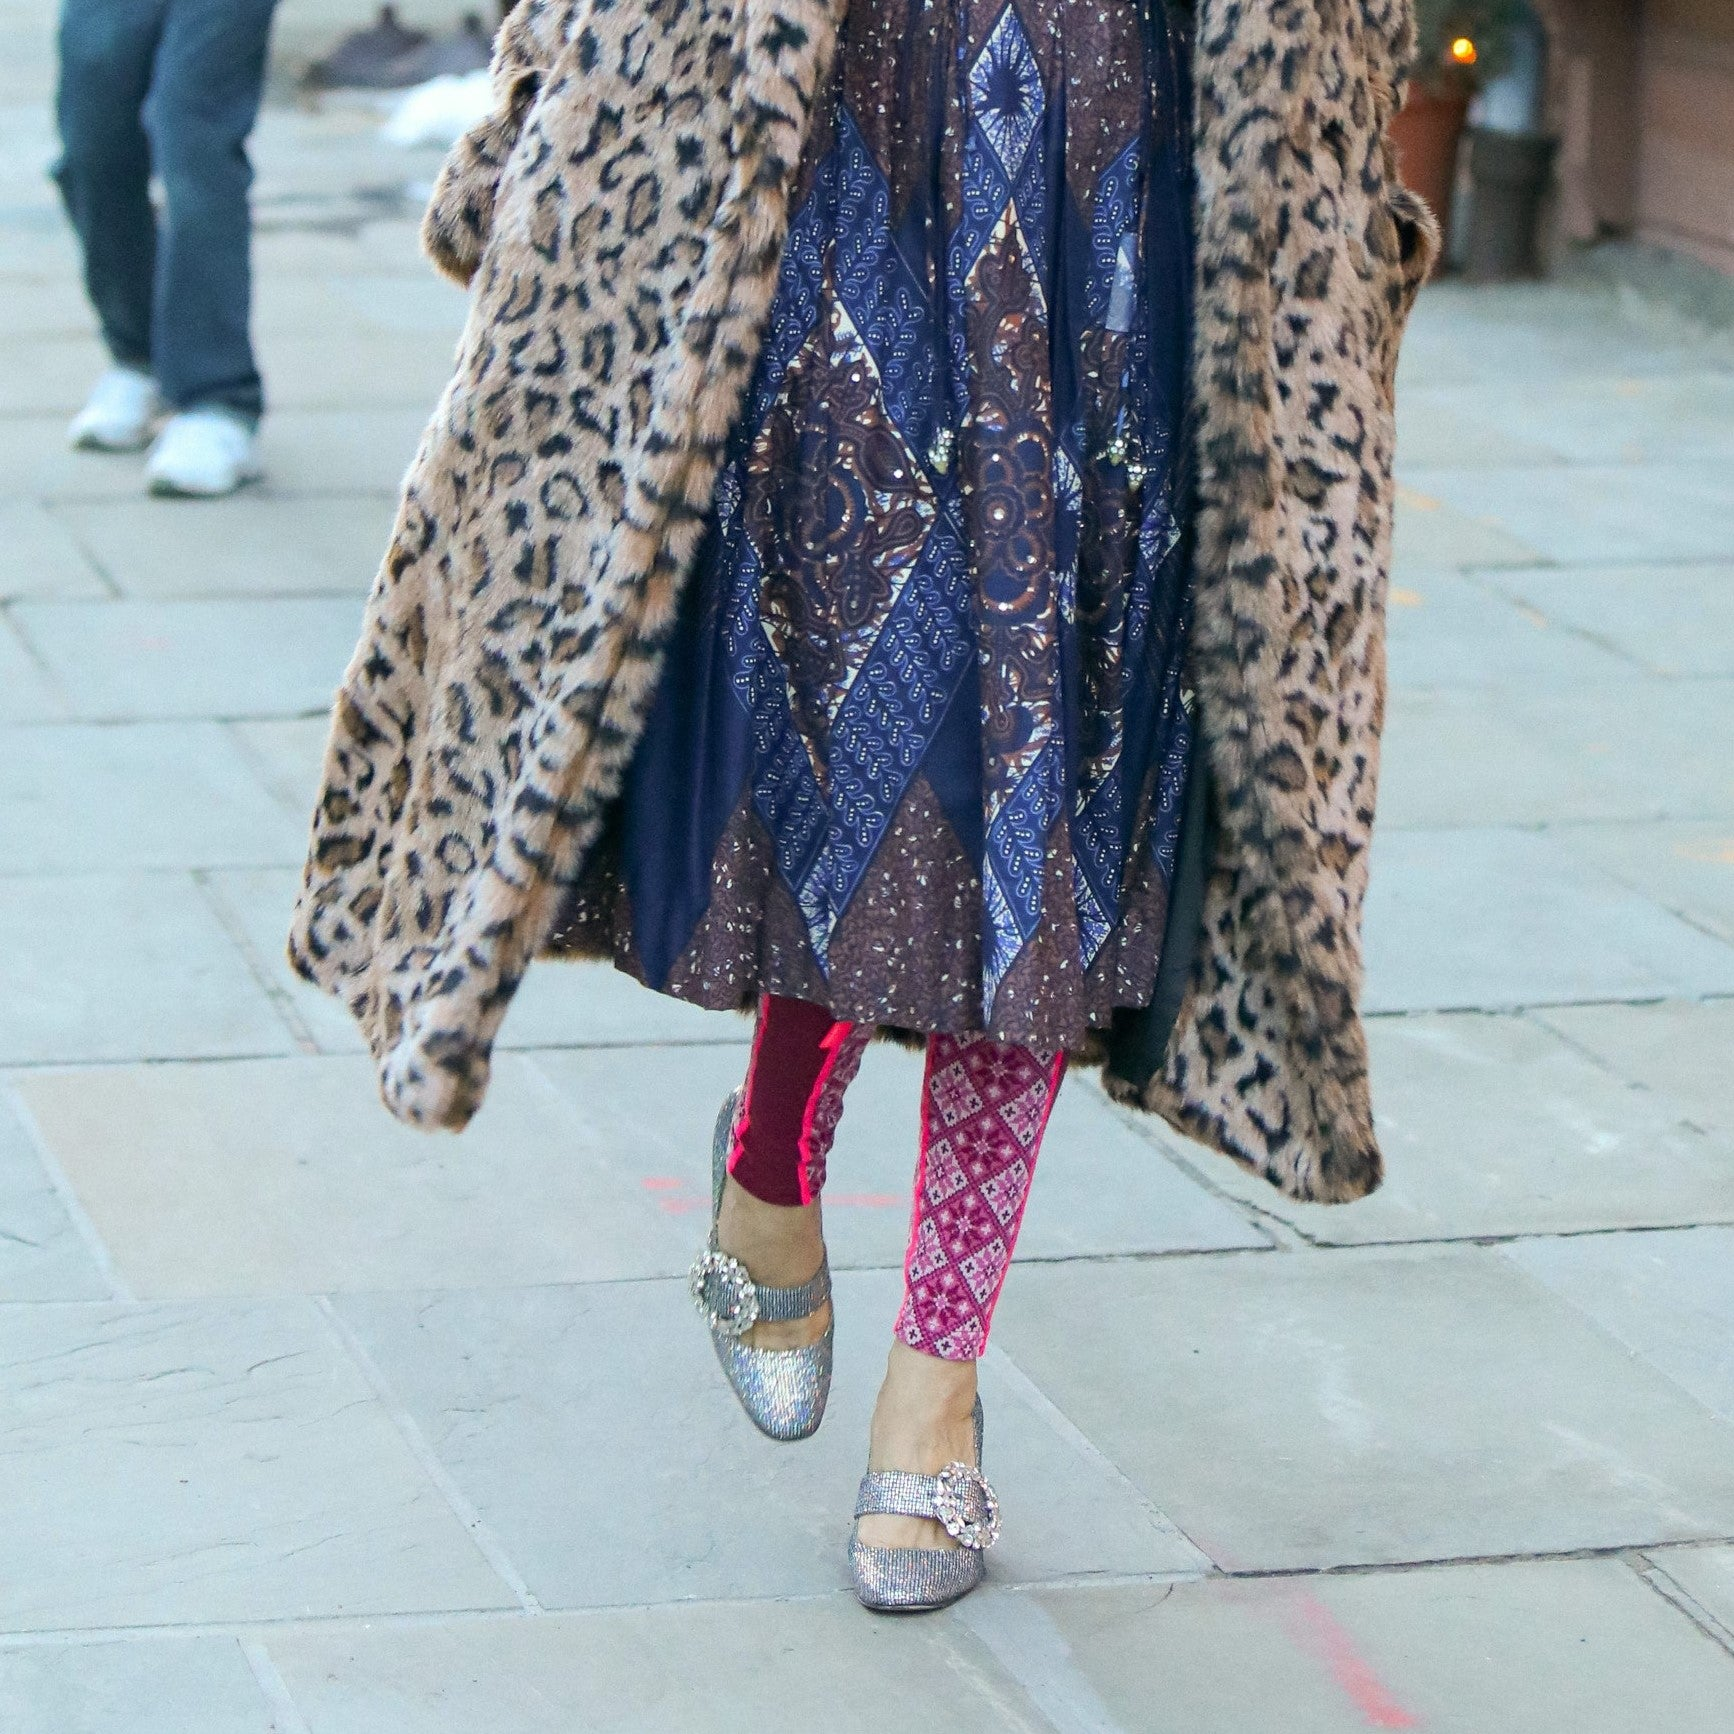 Sarah Jessica Parker's Eccentric Look Is So New York